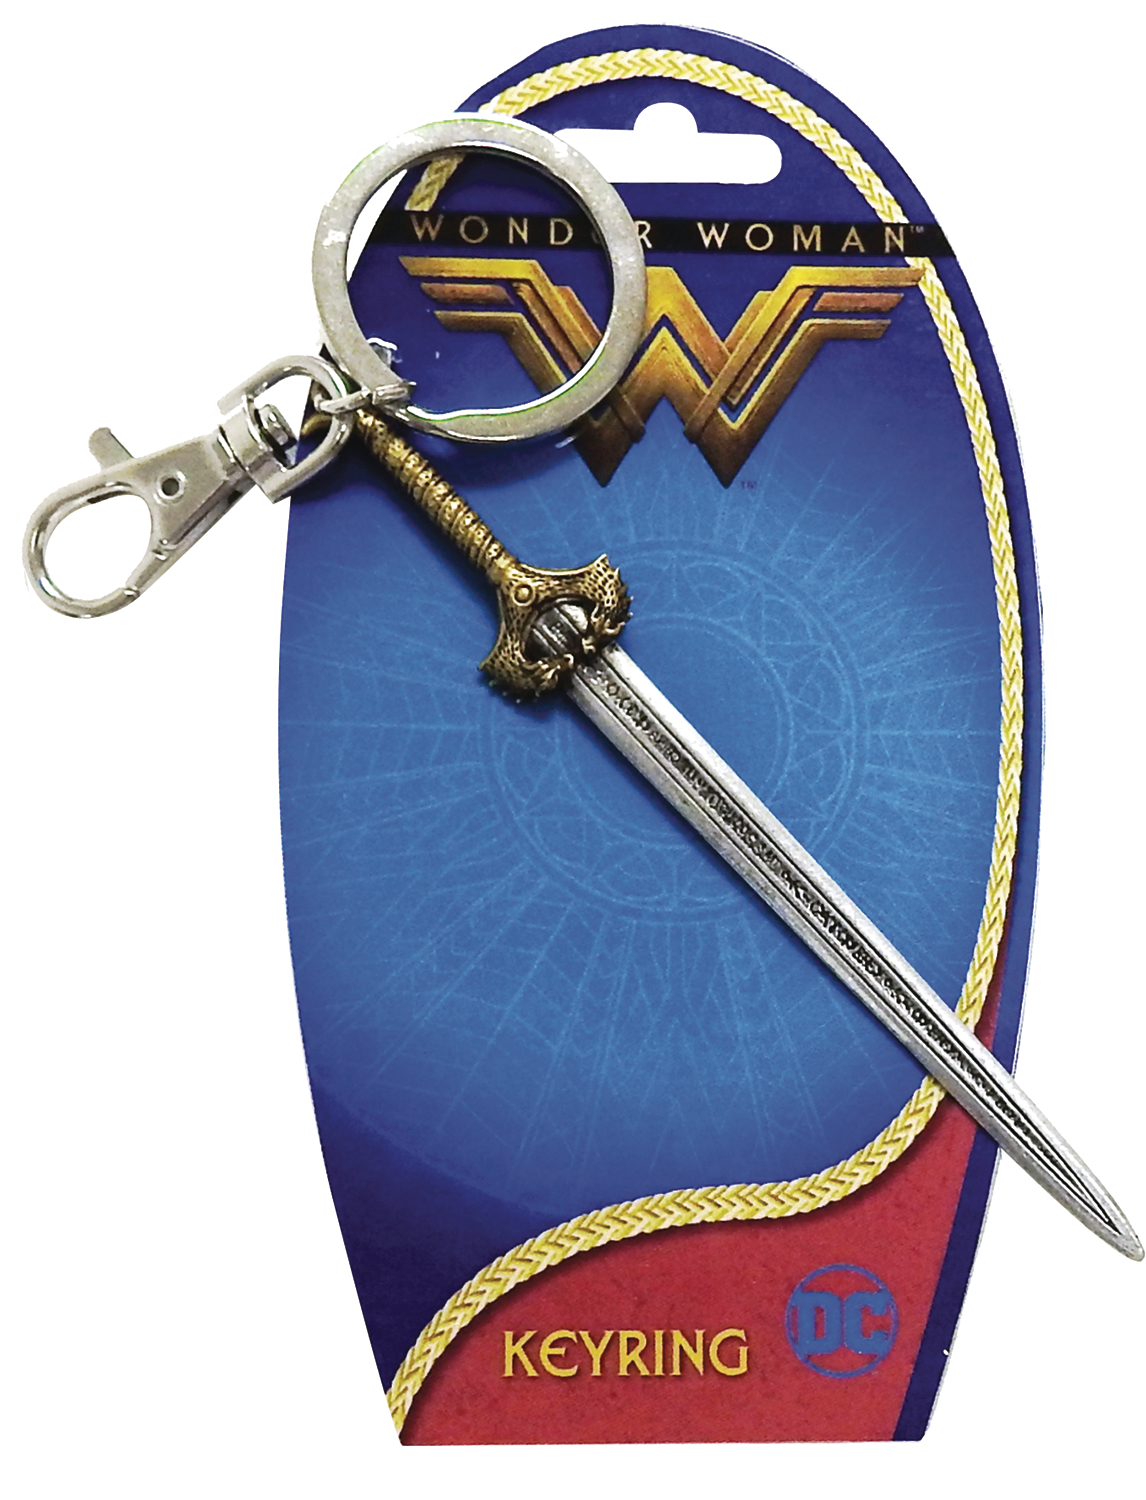 Wonder Woman - Sword Pewter Key Chain image